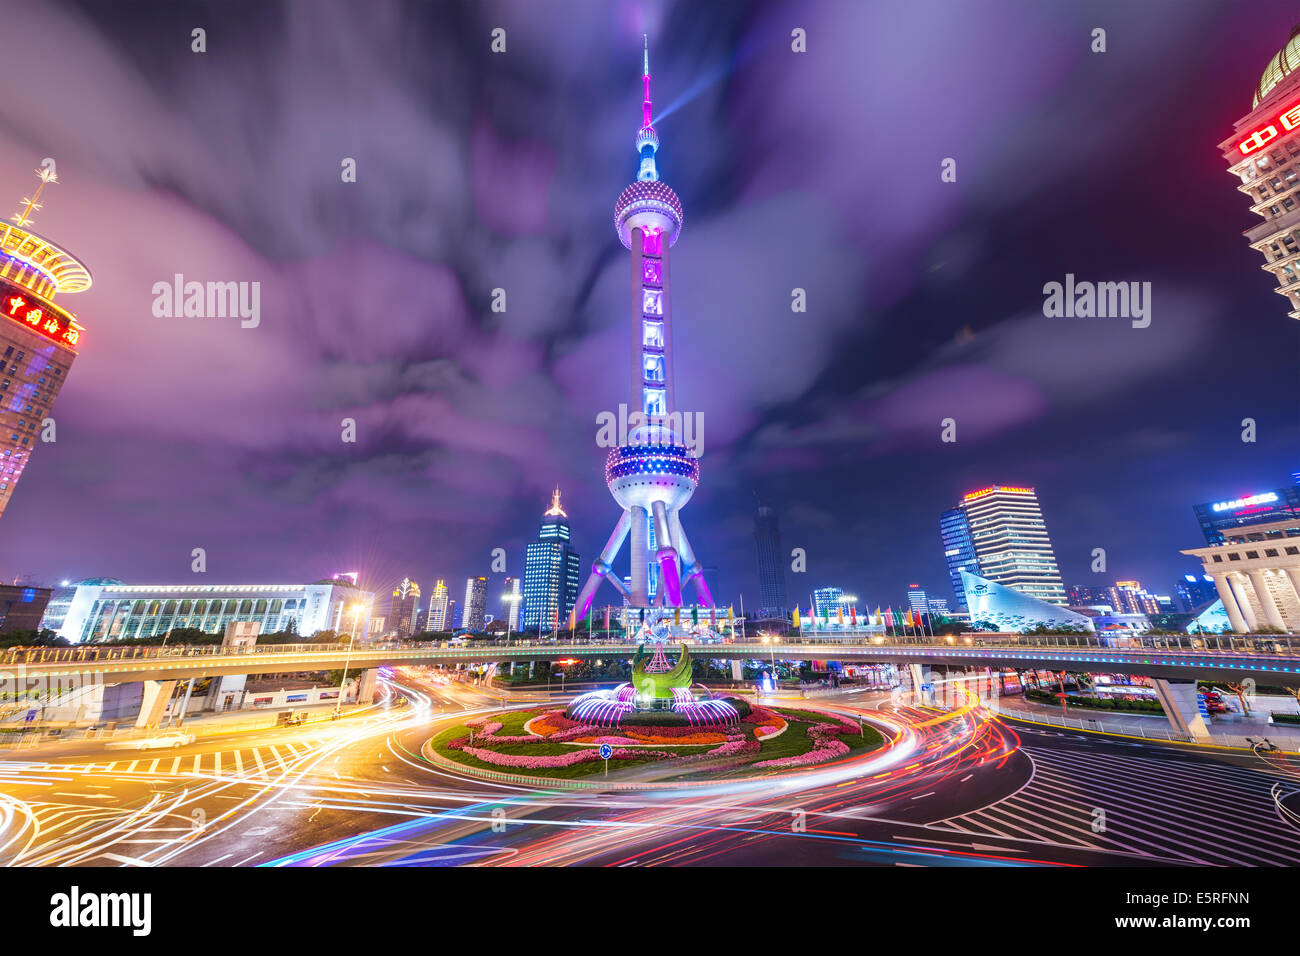 The Oriental Pearl Tower at night in Lujiazui Financial District of Shanghai, China. - Stock Image